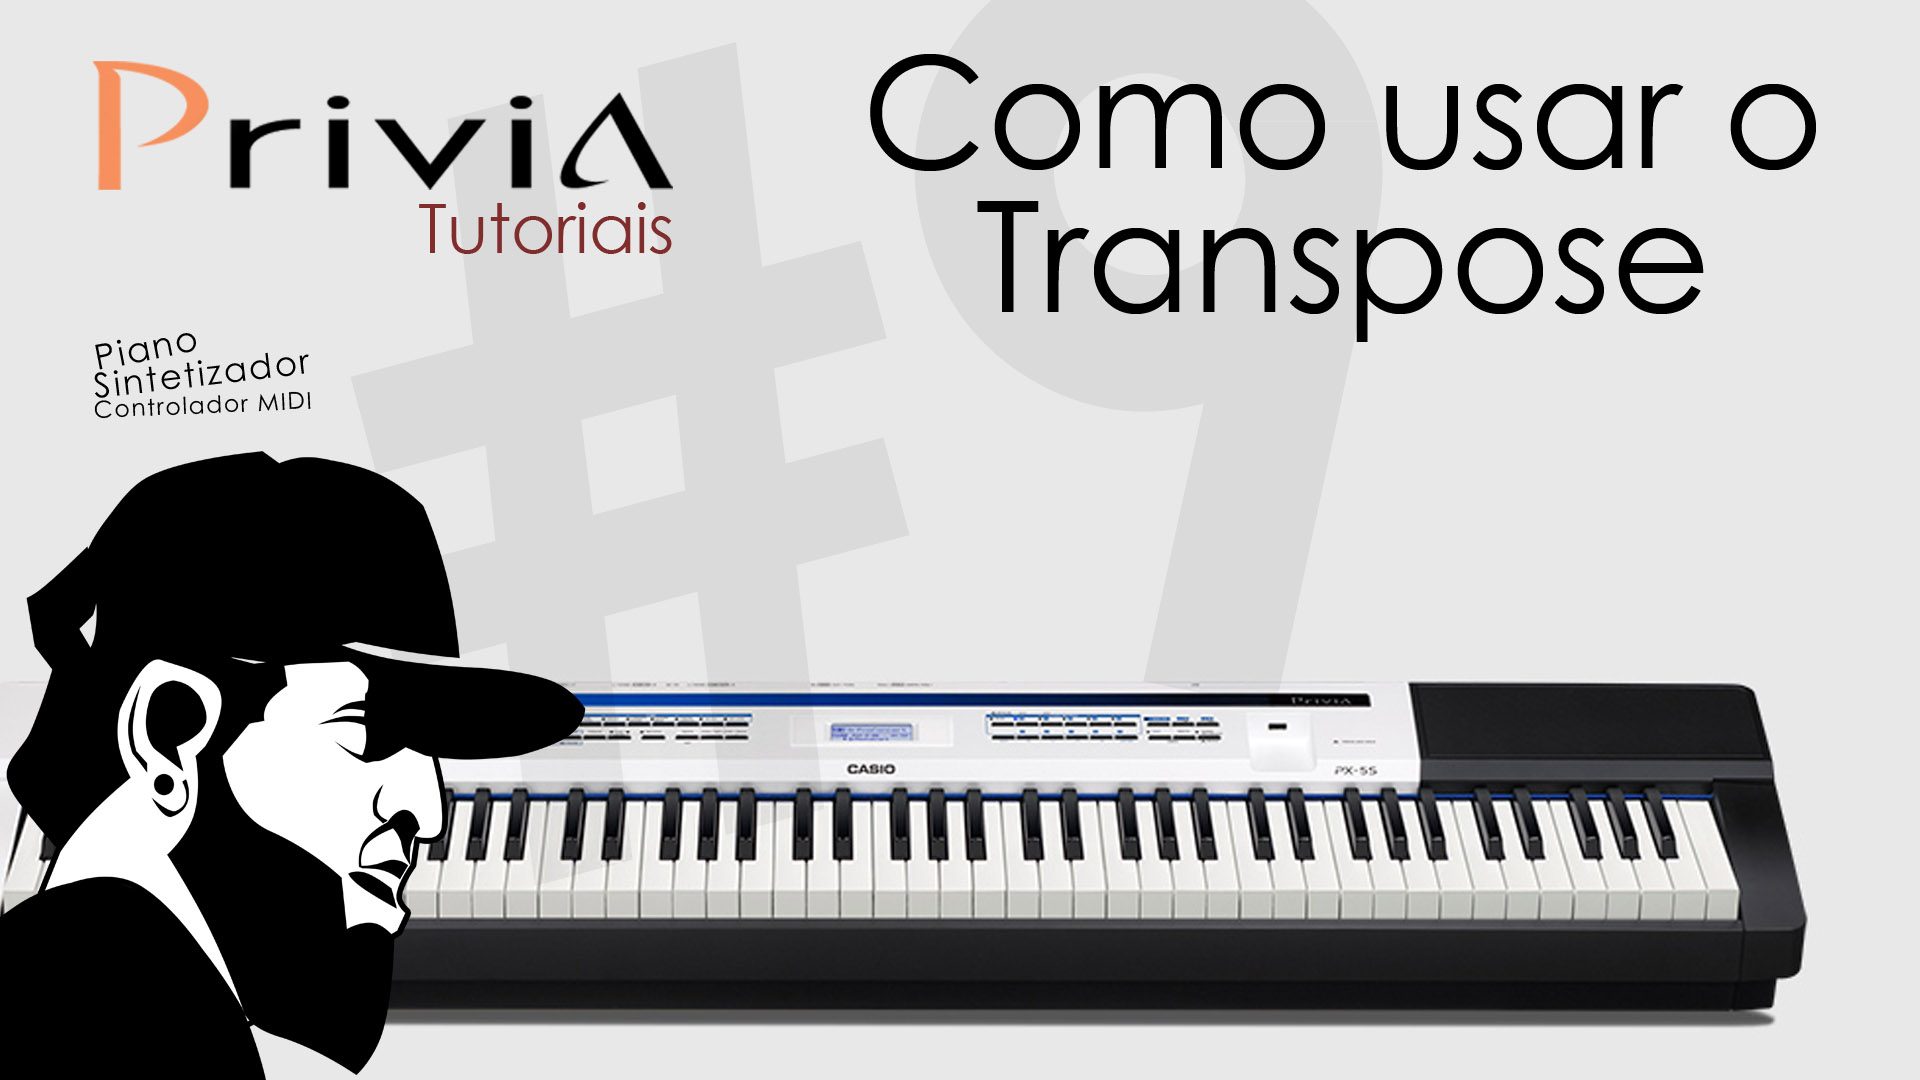 Tutorial Casio Privia PX 5S #9 – Como Usar o Transpose?